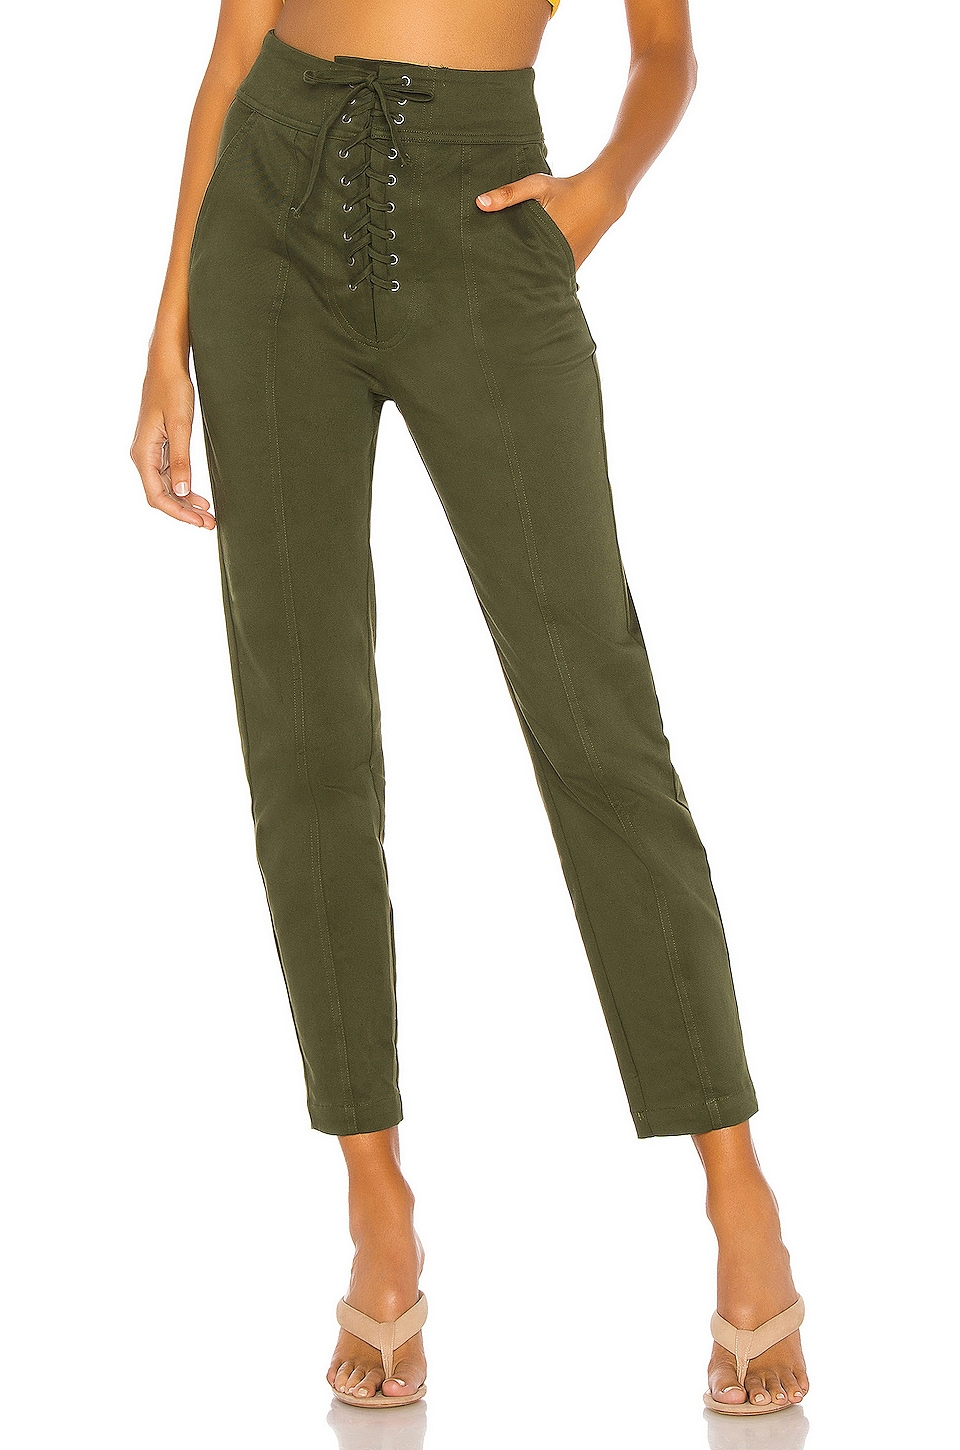 L'Academie Foley Pants in Green